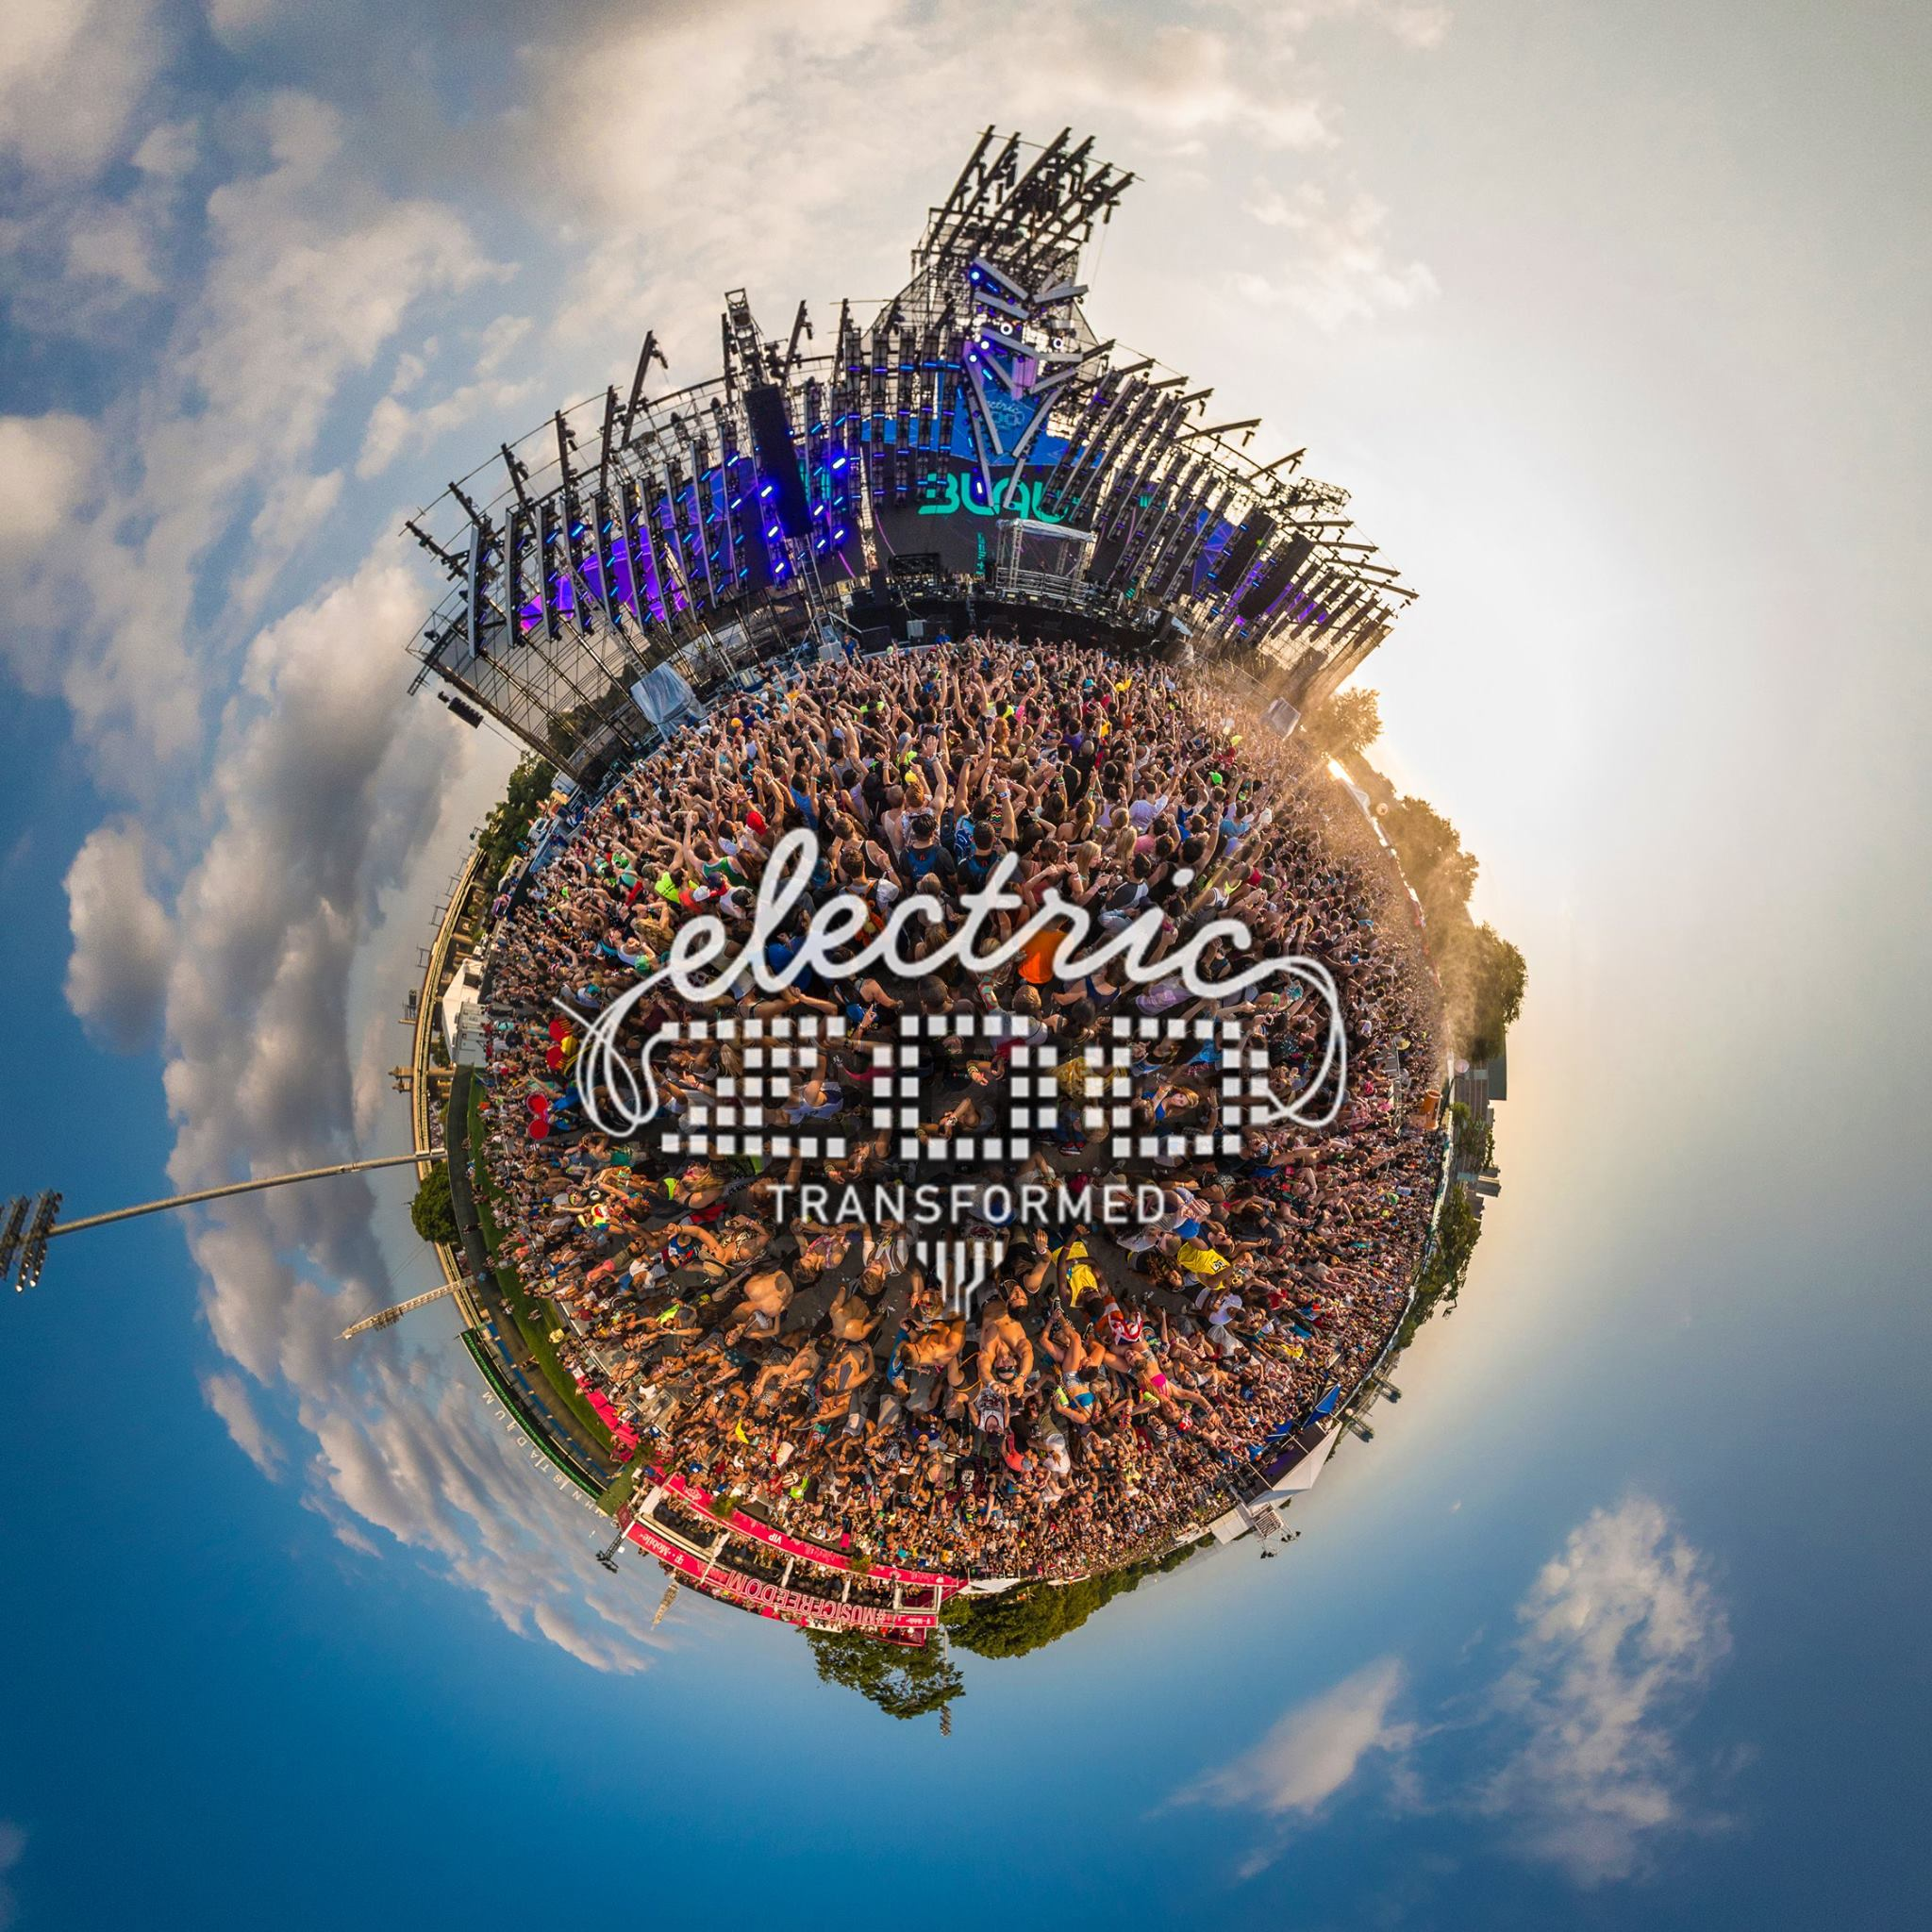 Electric Zoo Transformed 2